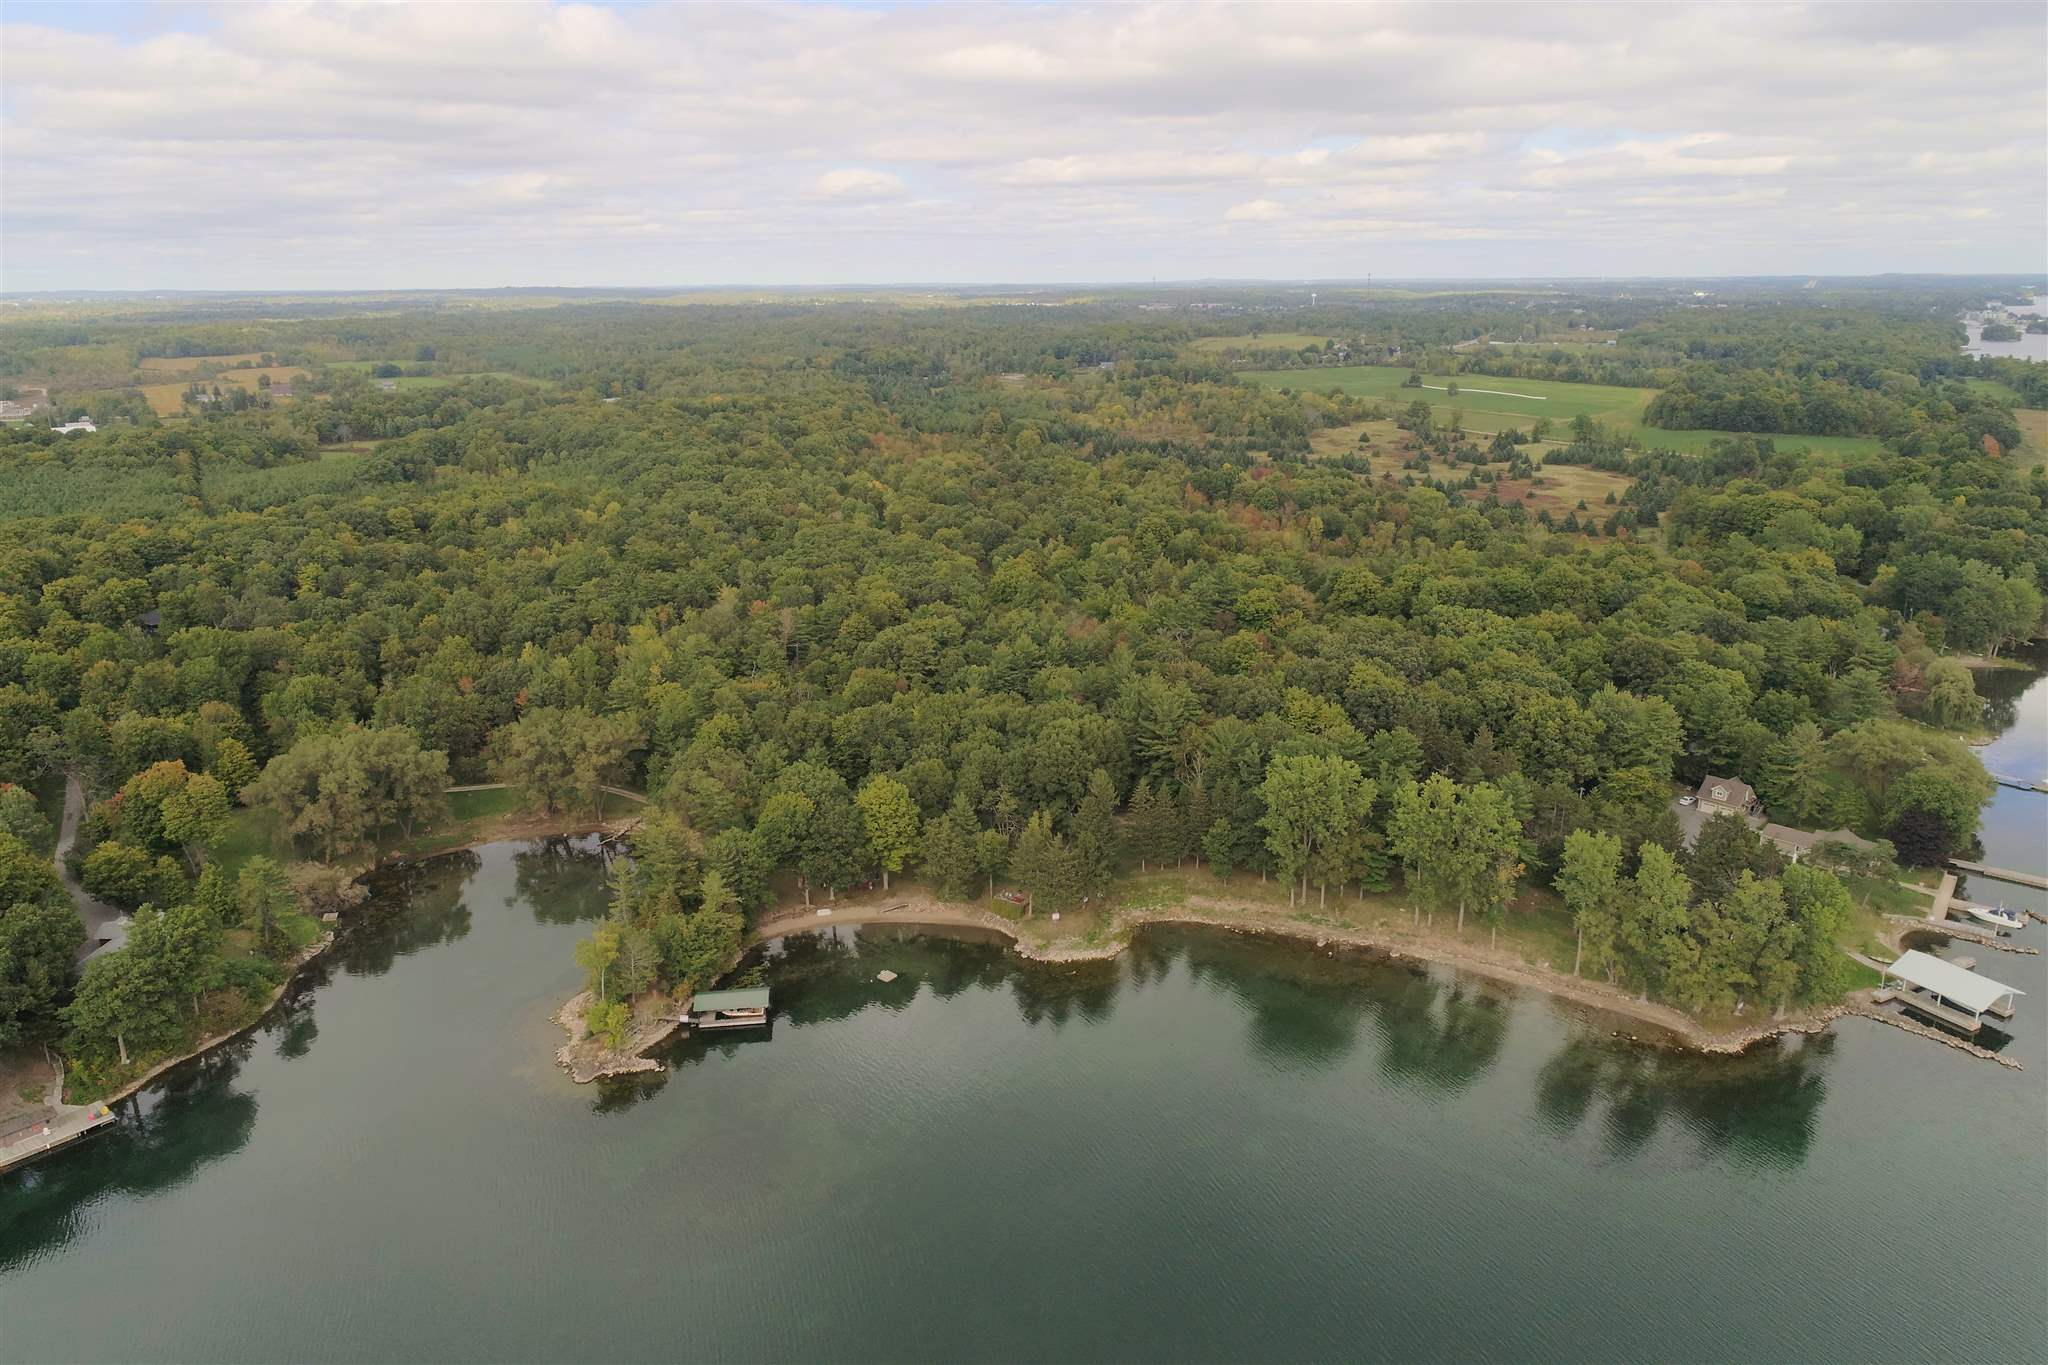 4947 Highway 2, Leeds & 1000 Islands Township Ontario, Canada